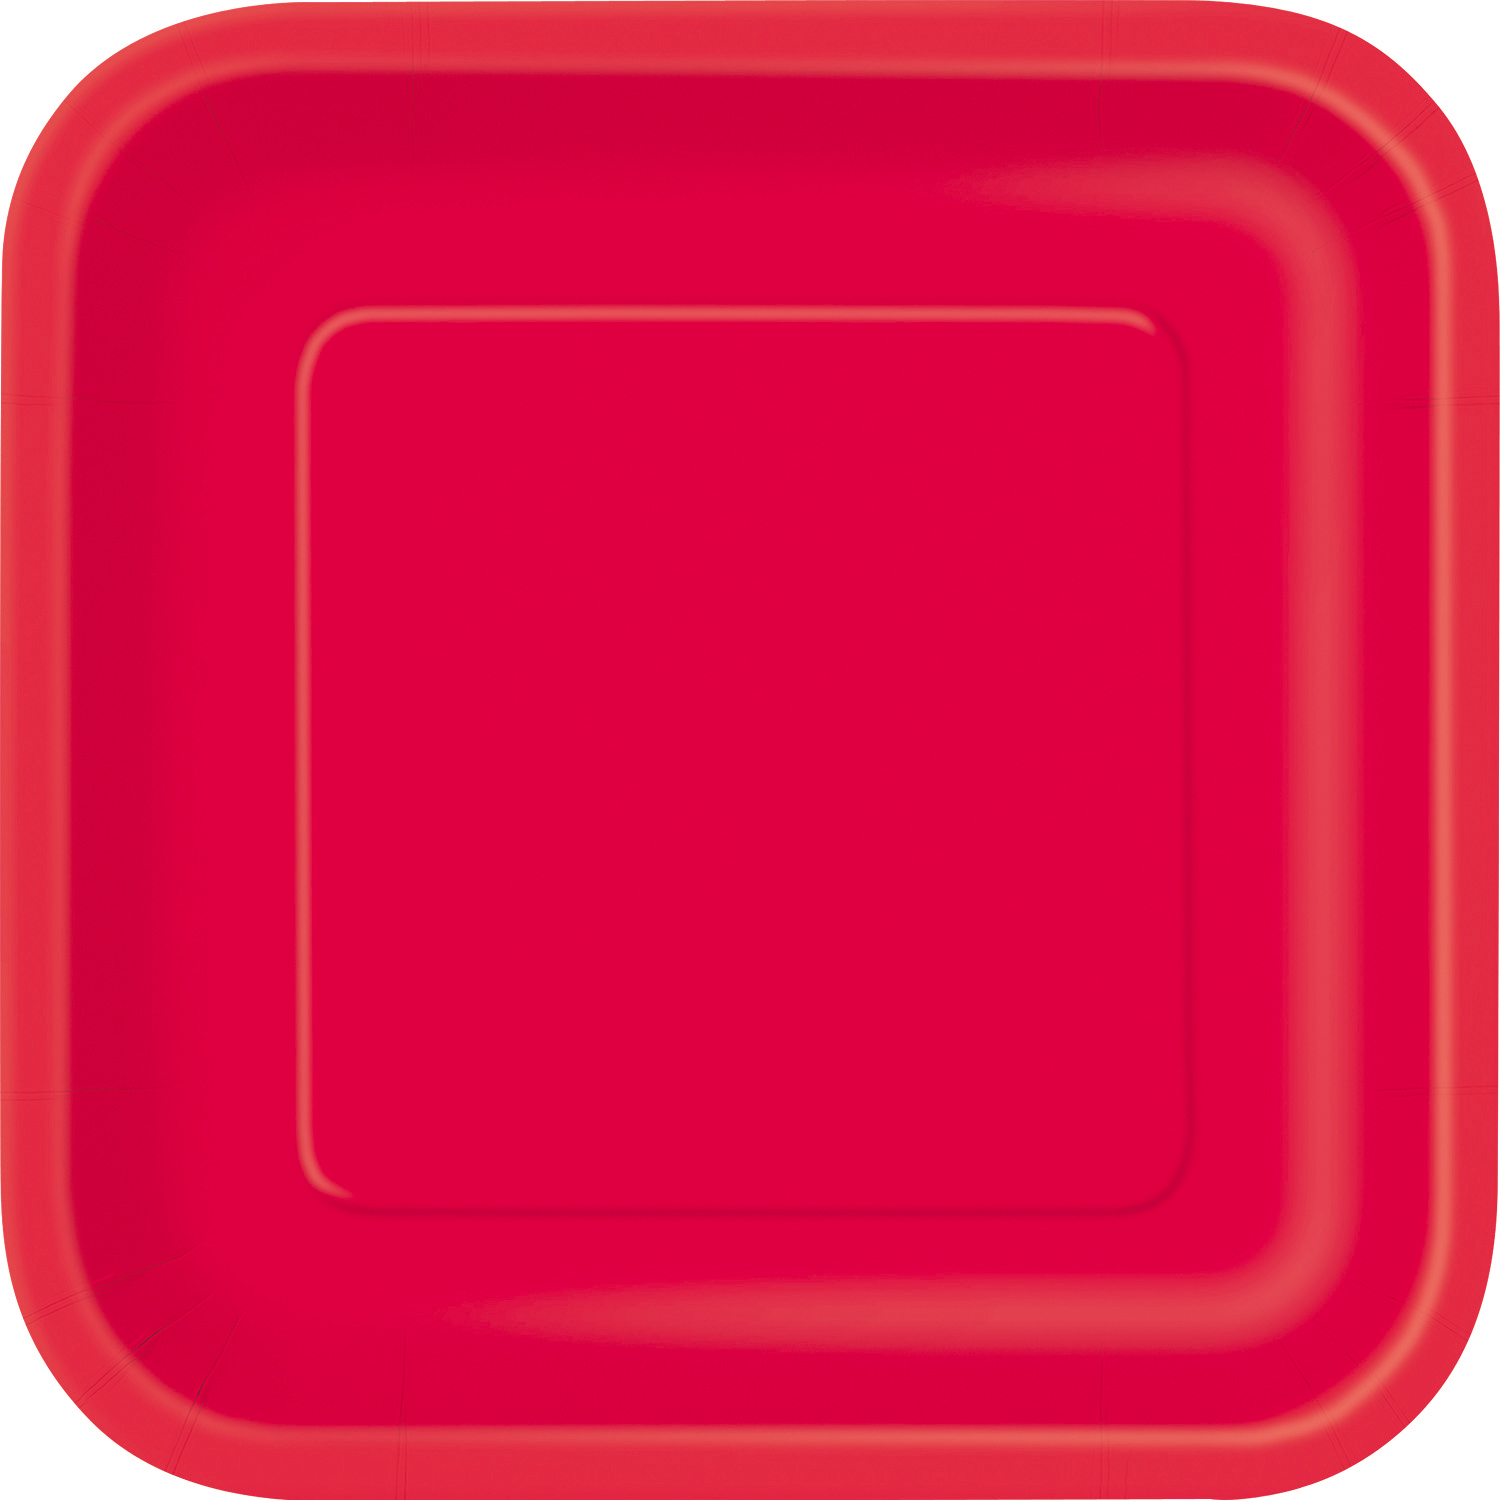 Square Paper Plates 9 in Red 14ct  sc 1 st  Walmart.com & Square Paper Plates 9 in Red 14ct - Walmart.com